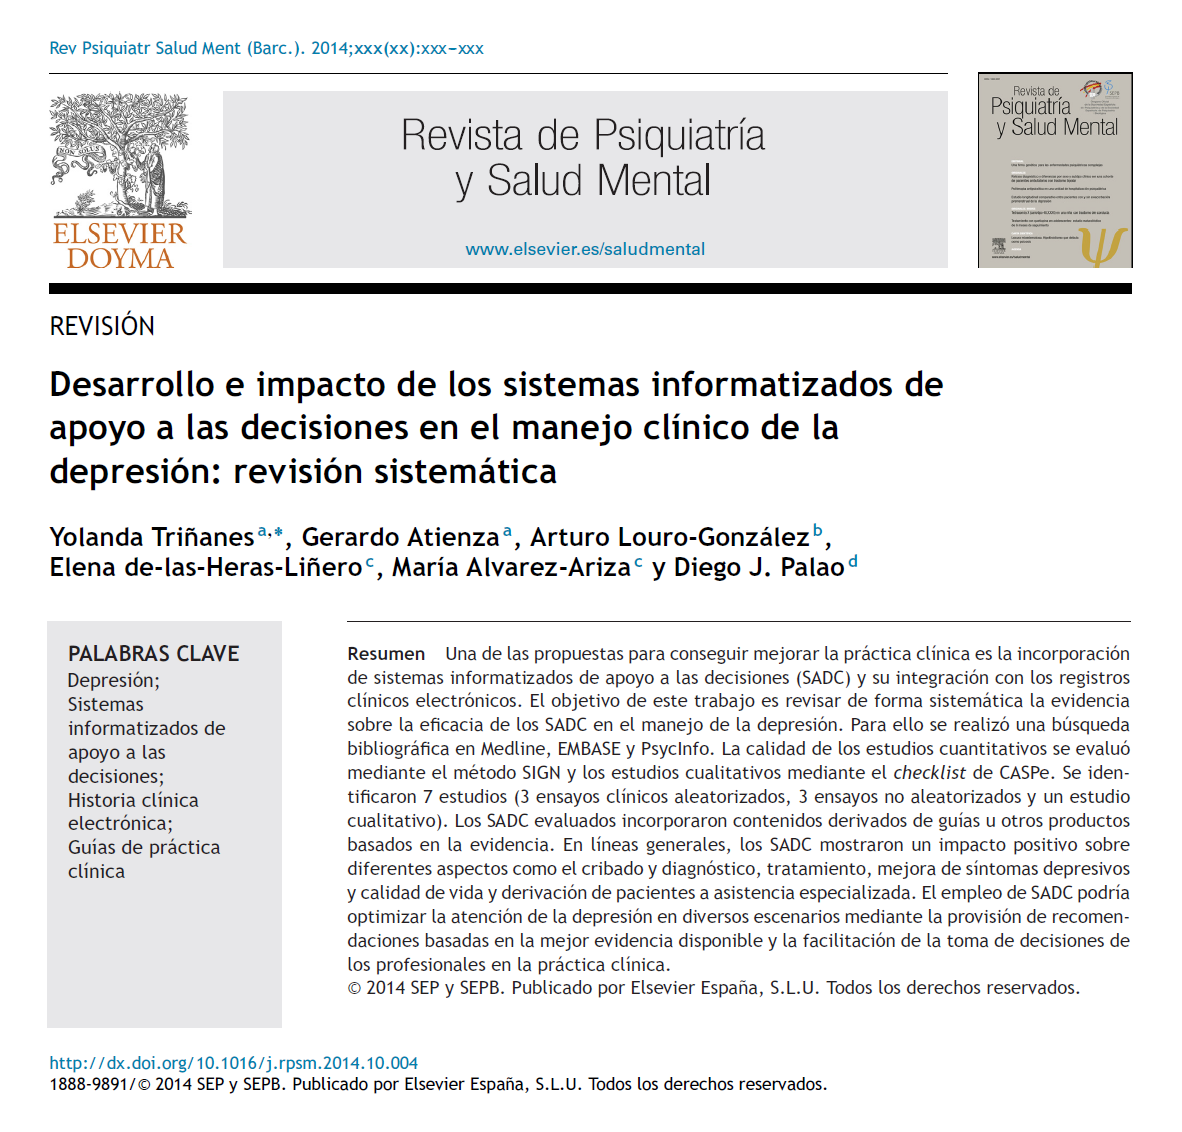 http://apps.elsevier.es/watermark/ctl_servlet?_f=10&pident_articulo=0&pident_usuario=0&pcontactid=&pident_revista=286&ty=0&accion=L&origen=zonadelectura&web=zl.elsevier.es&lan=es&fichero=S1888-9891(14)00145-1.pdf&eop=1&early=si